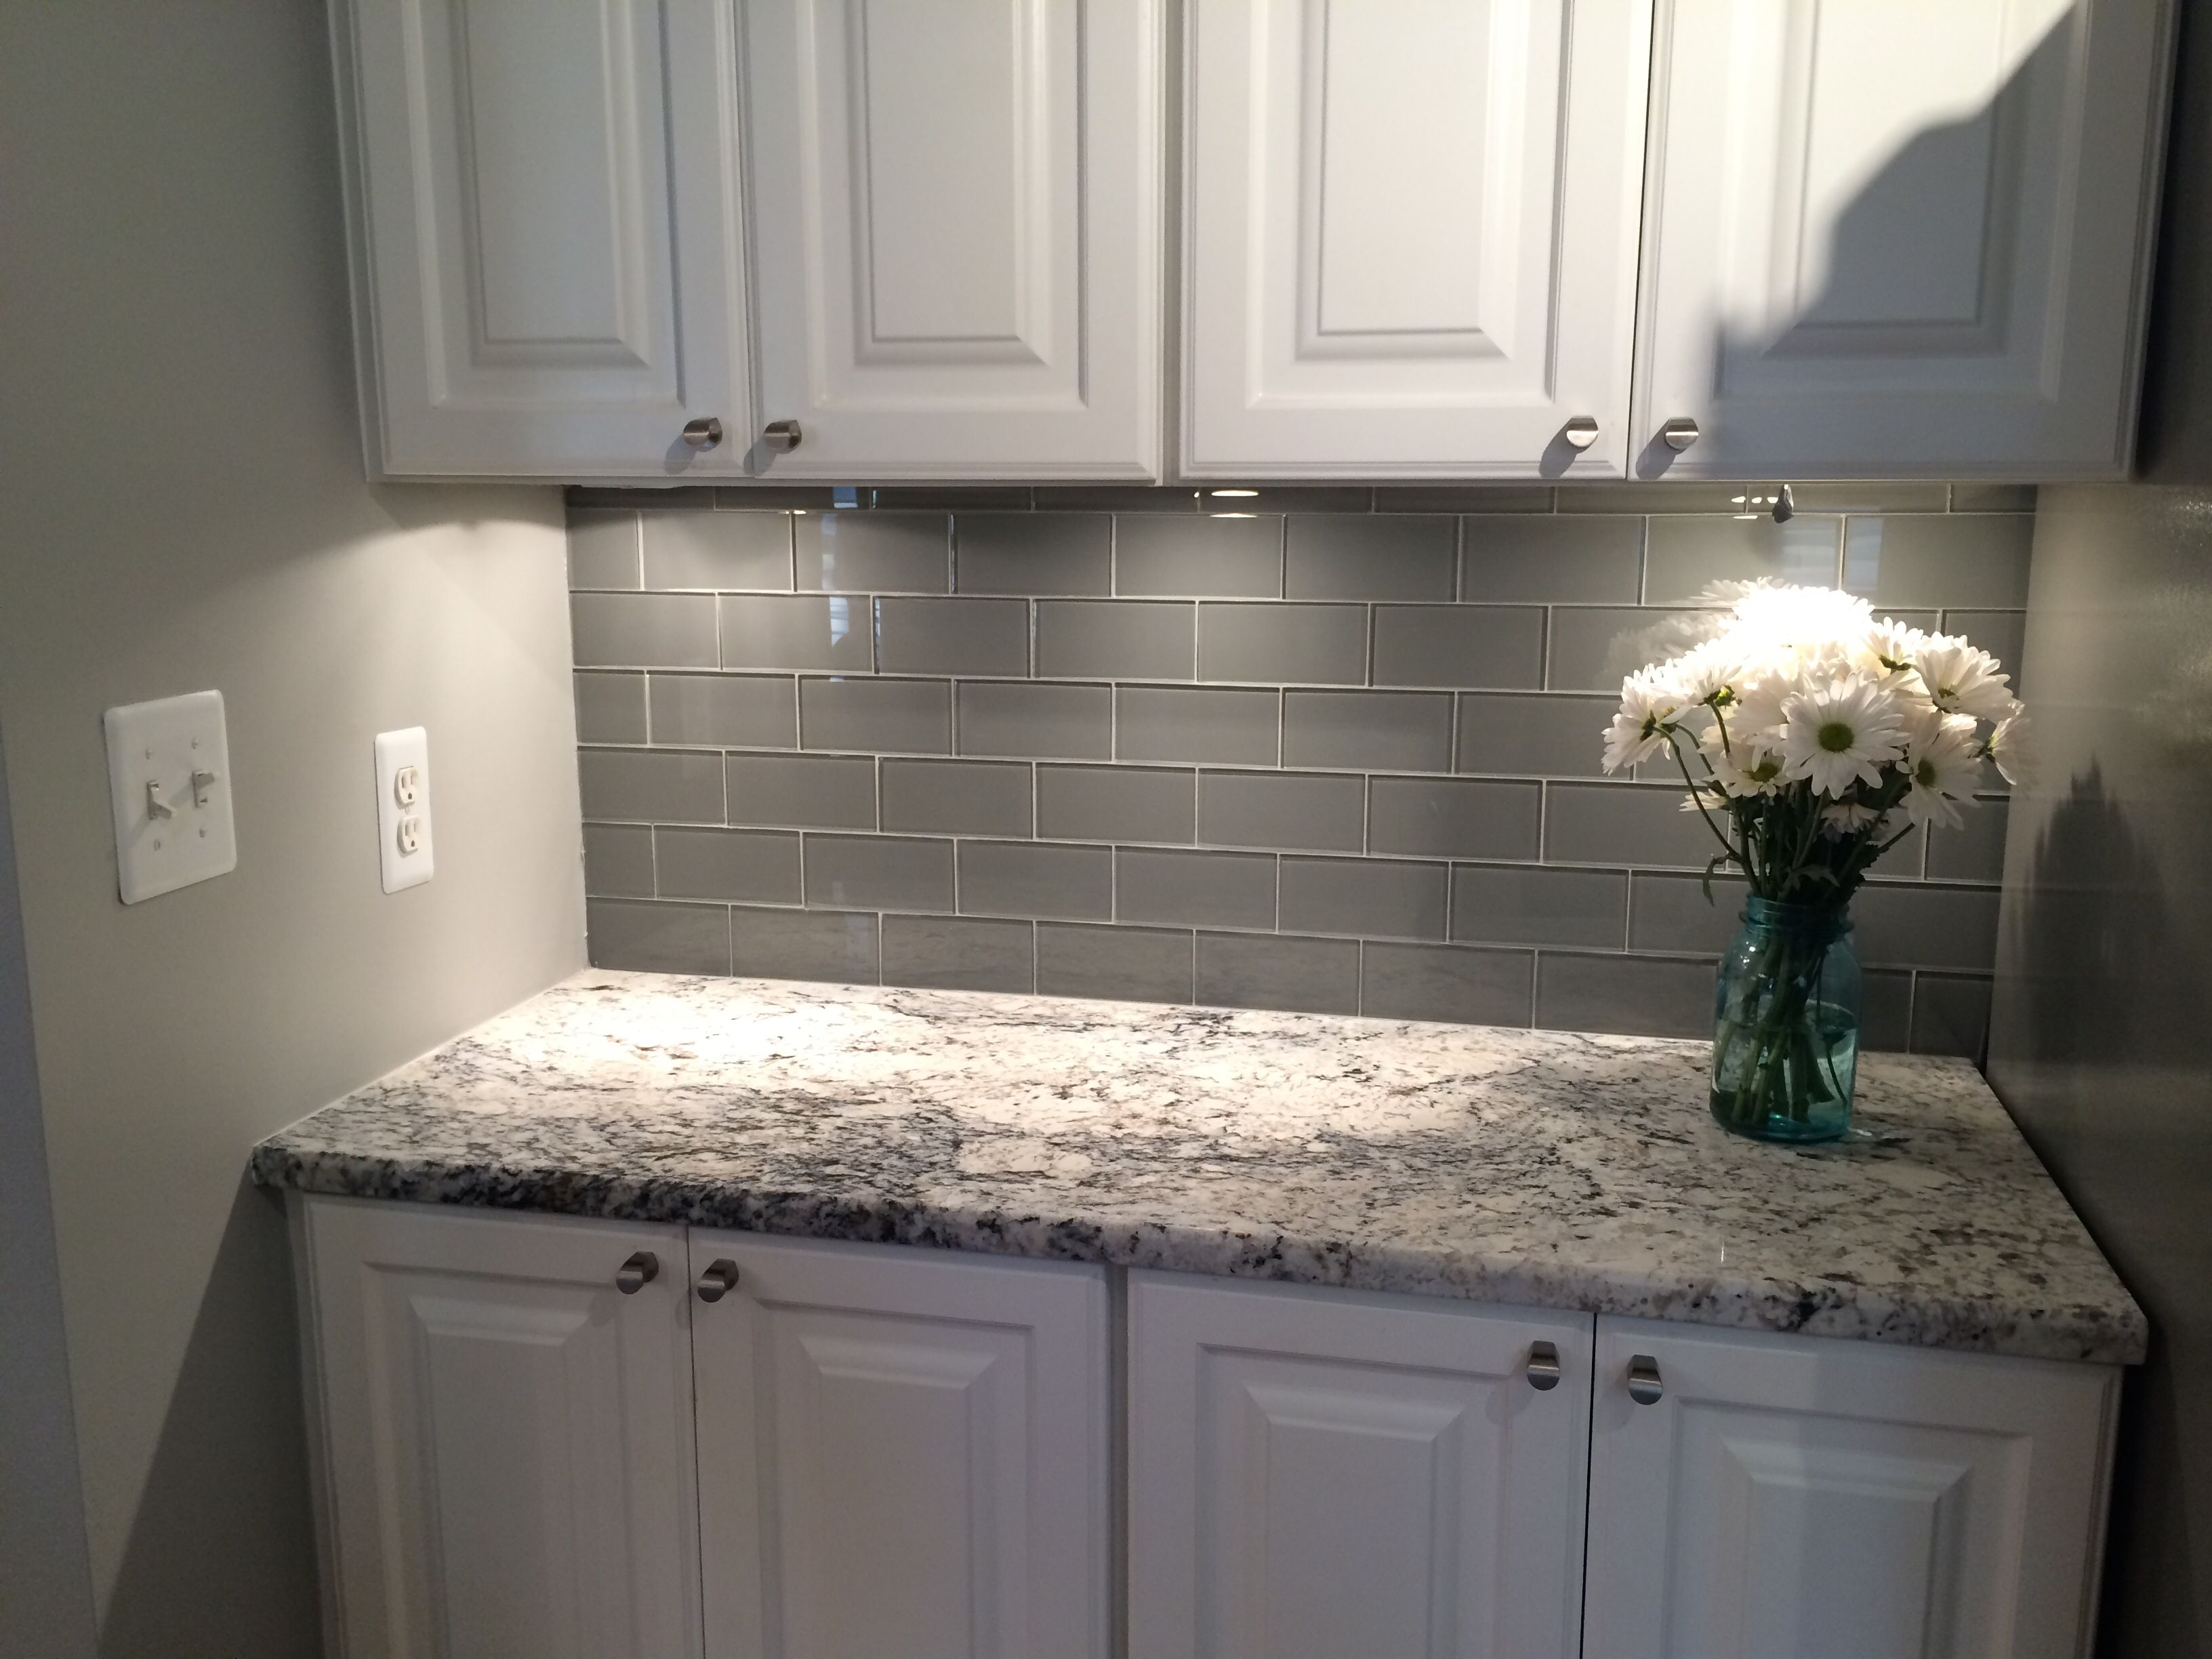 Grey glass subway tile backsplash and white cabinet for small space counter top ideas